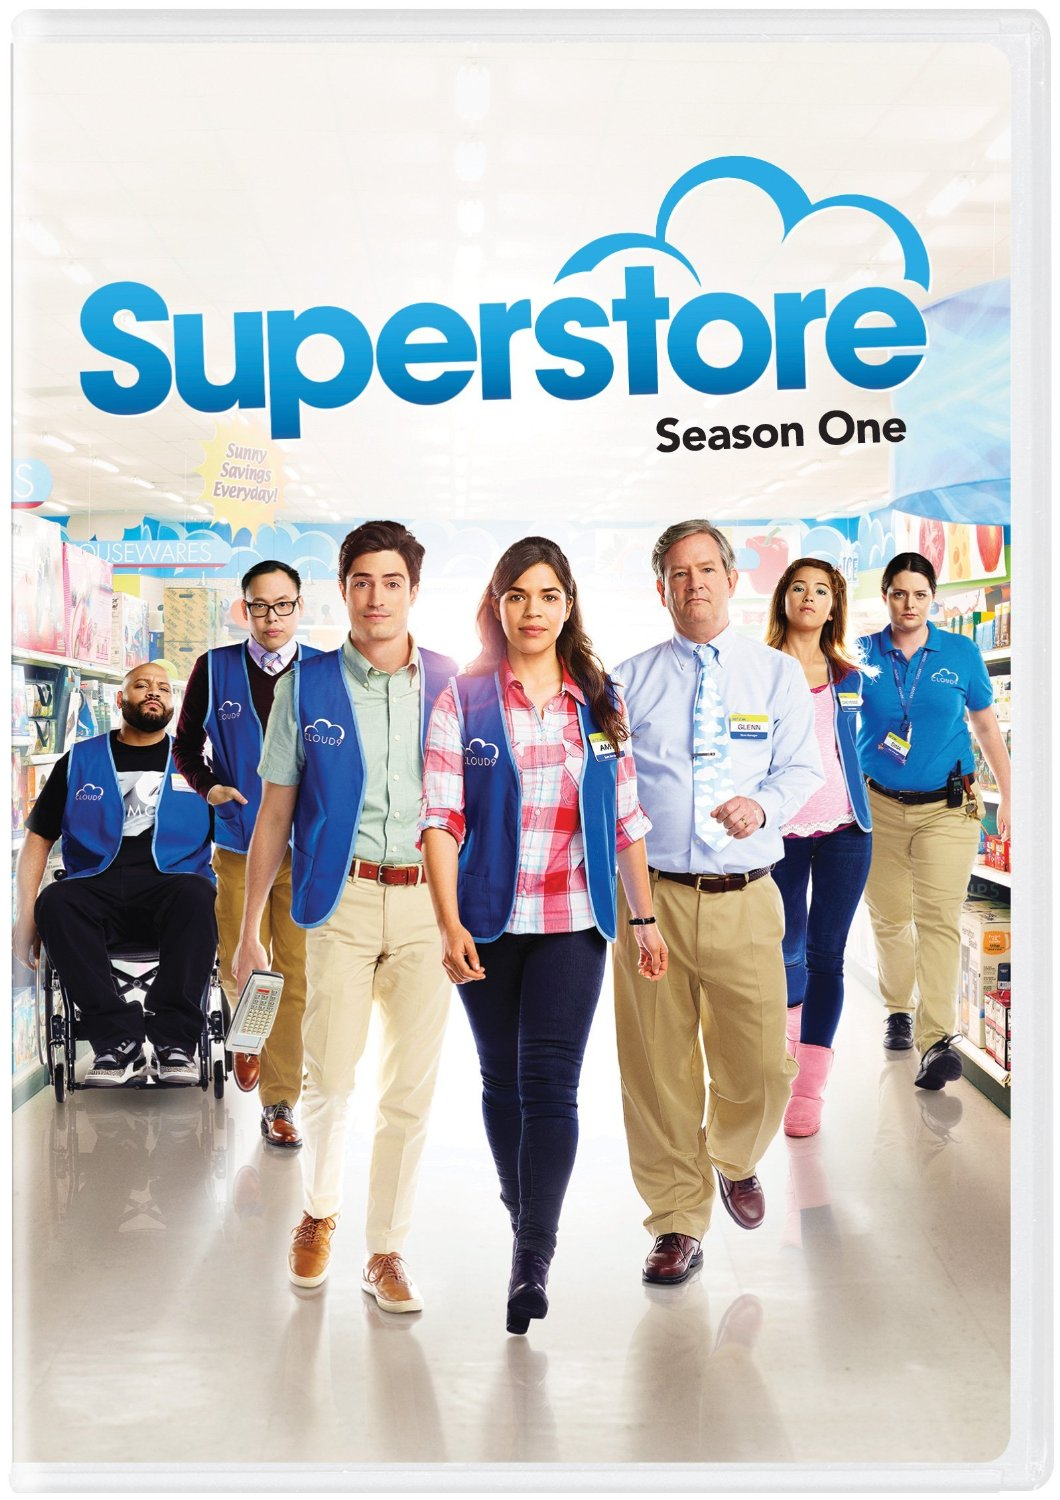 Superstore [TV Series] - Superstore: Season One